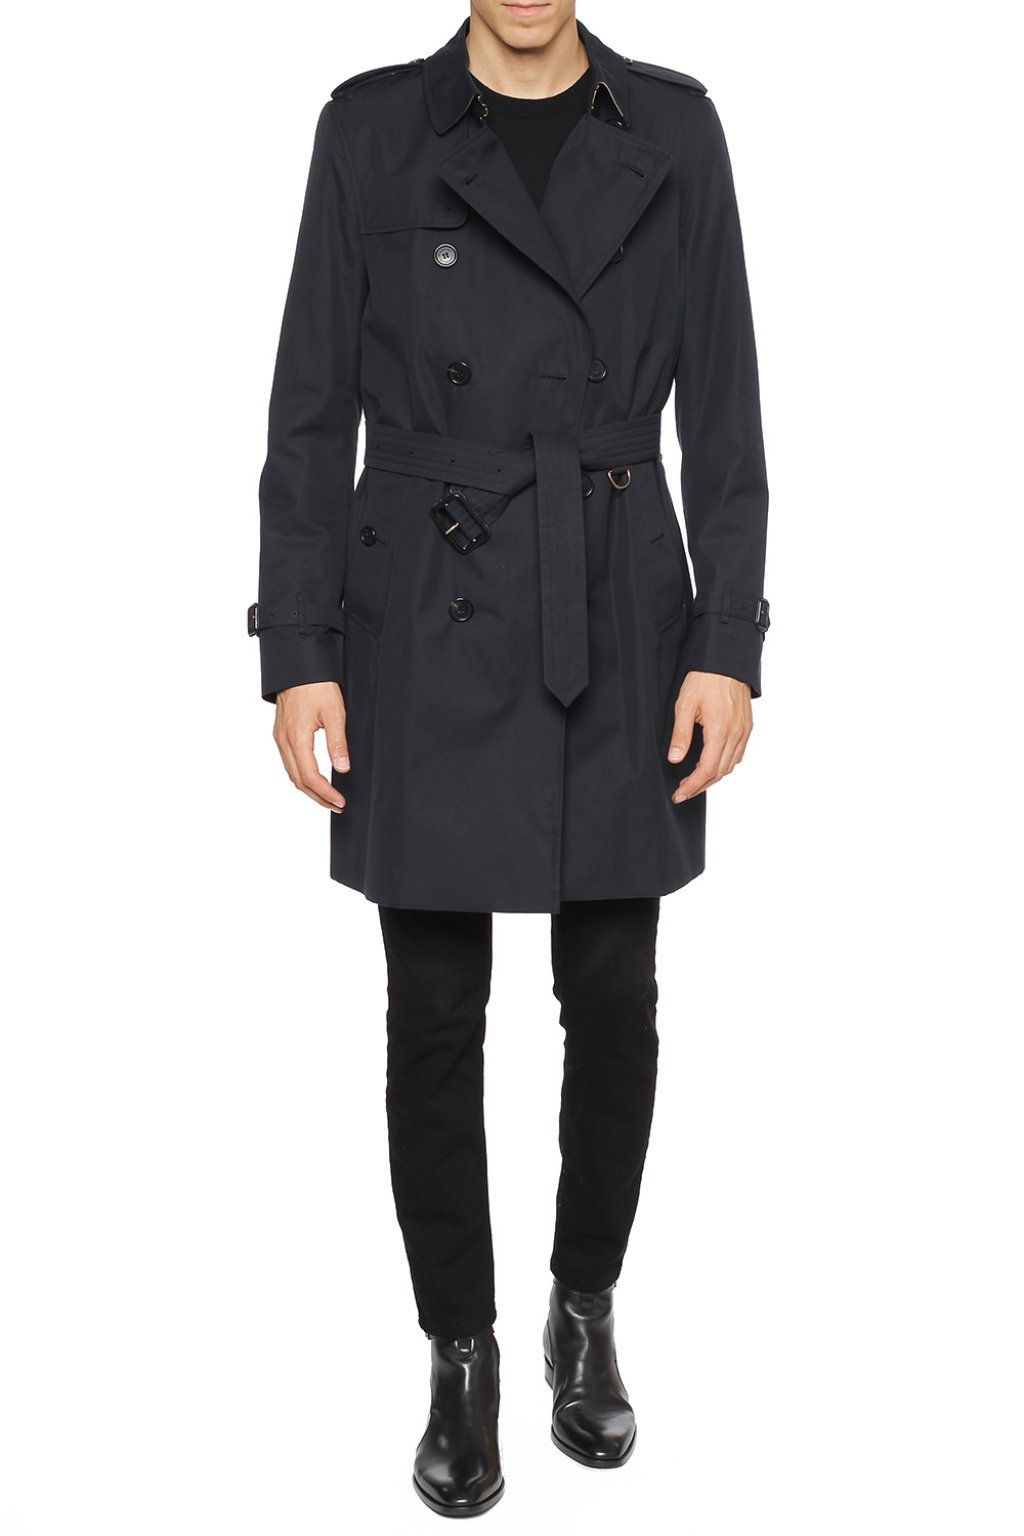 Burberry 'The Kensington' trench coat